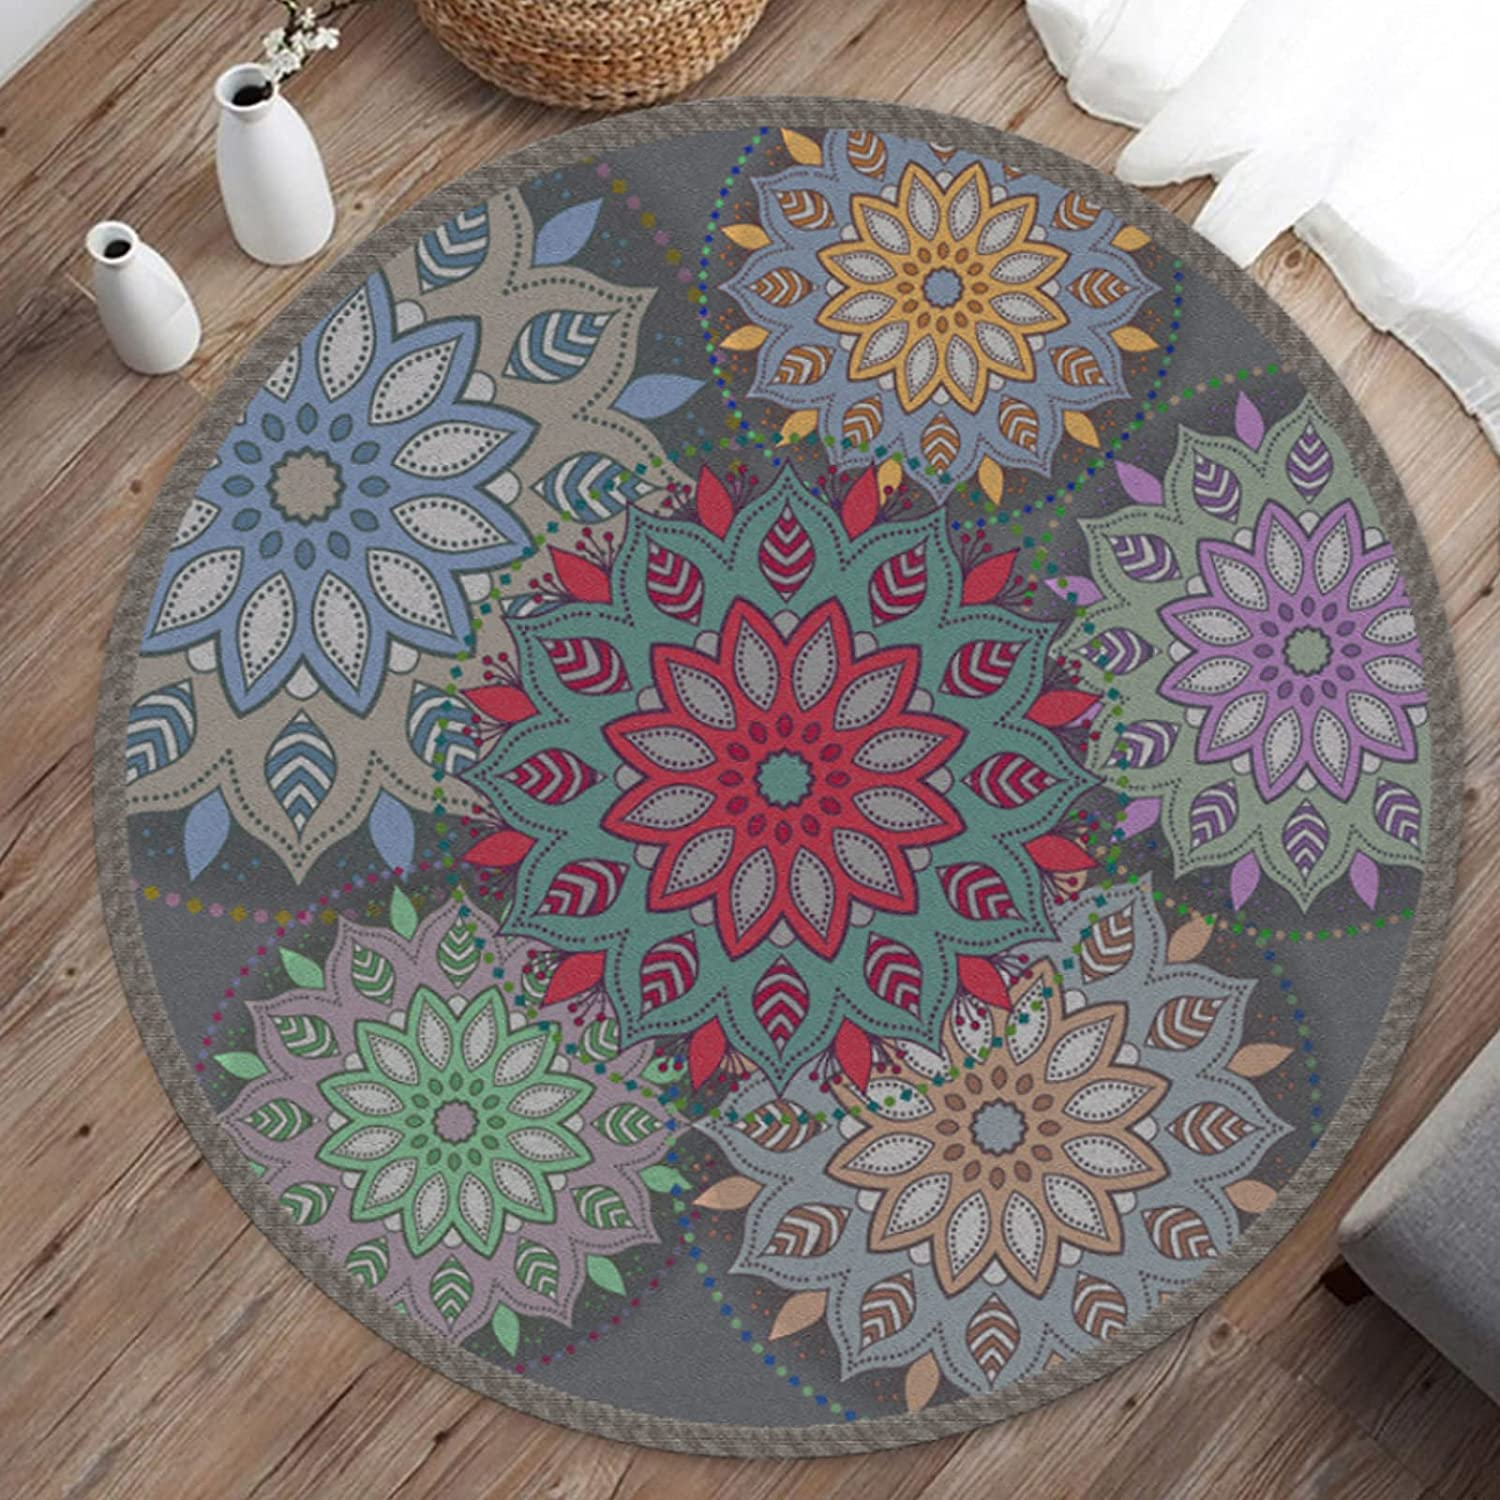 Round Chair Mat Floor Protector Office Home for Hardwo sold out Non-Slip mart